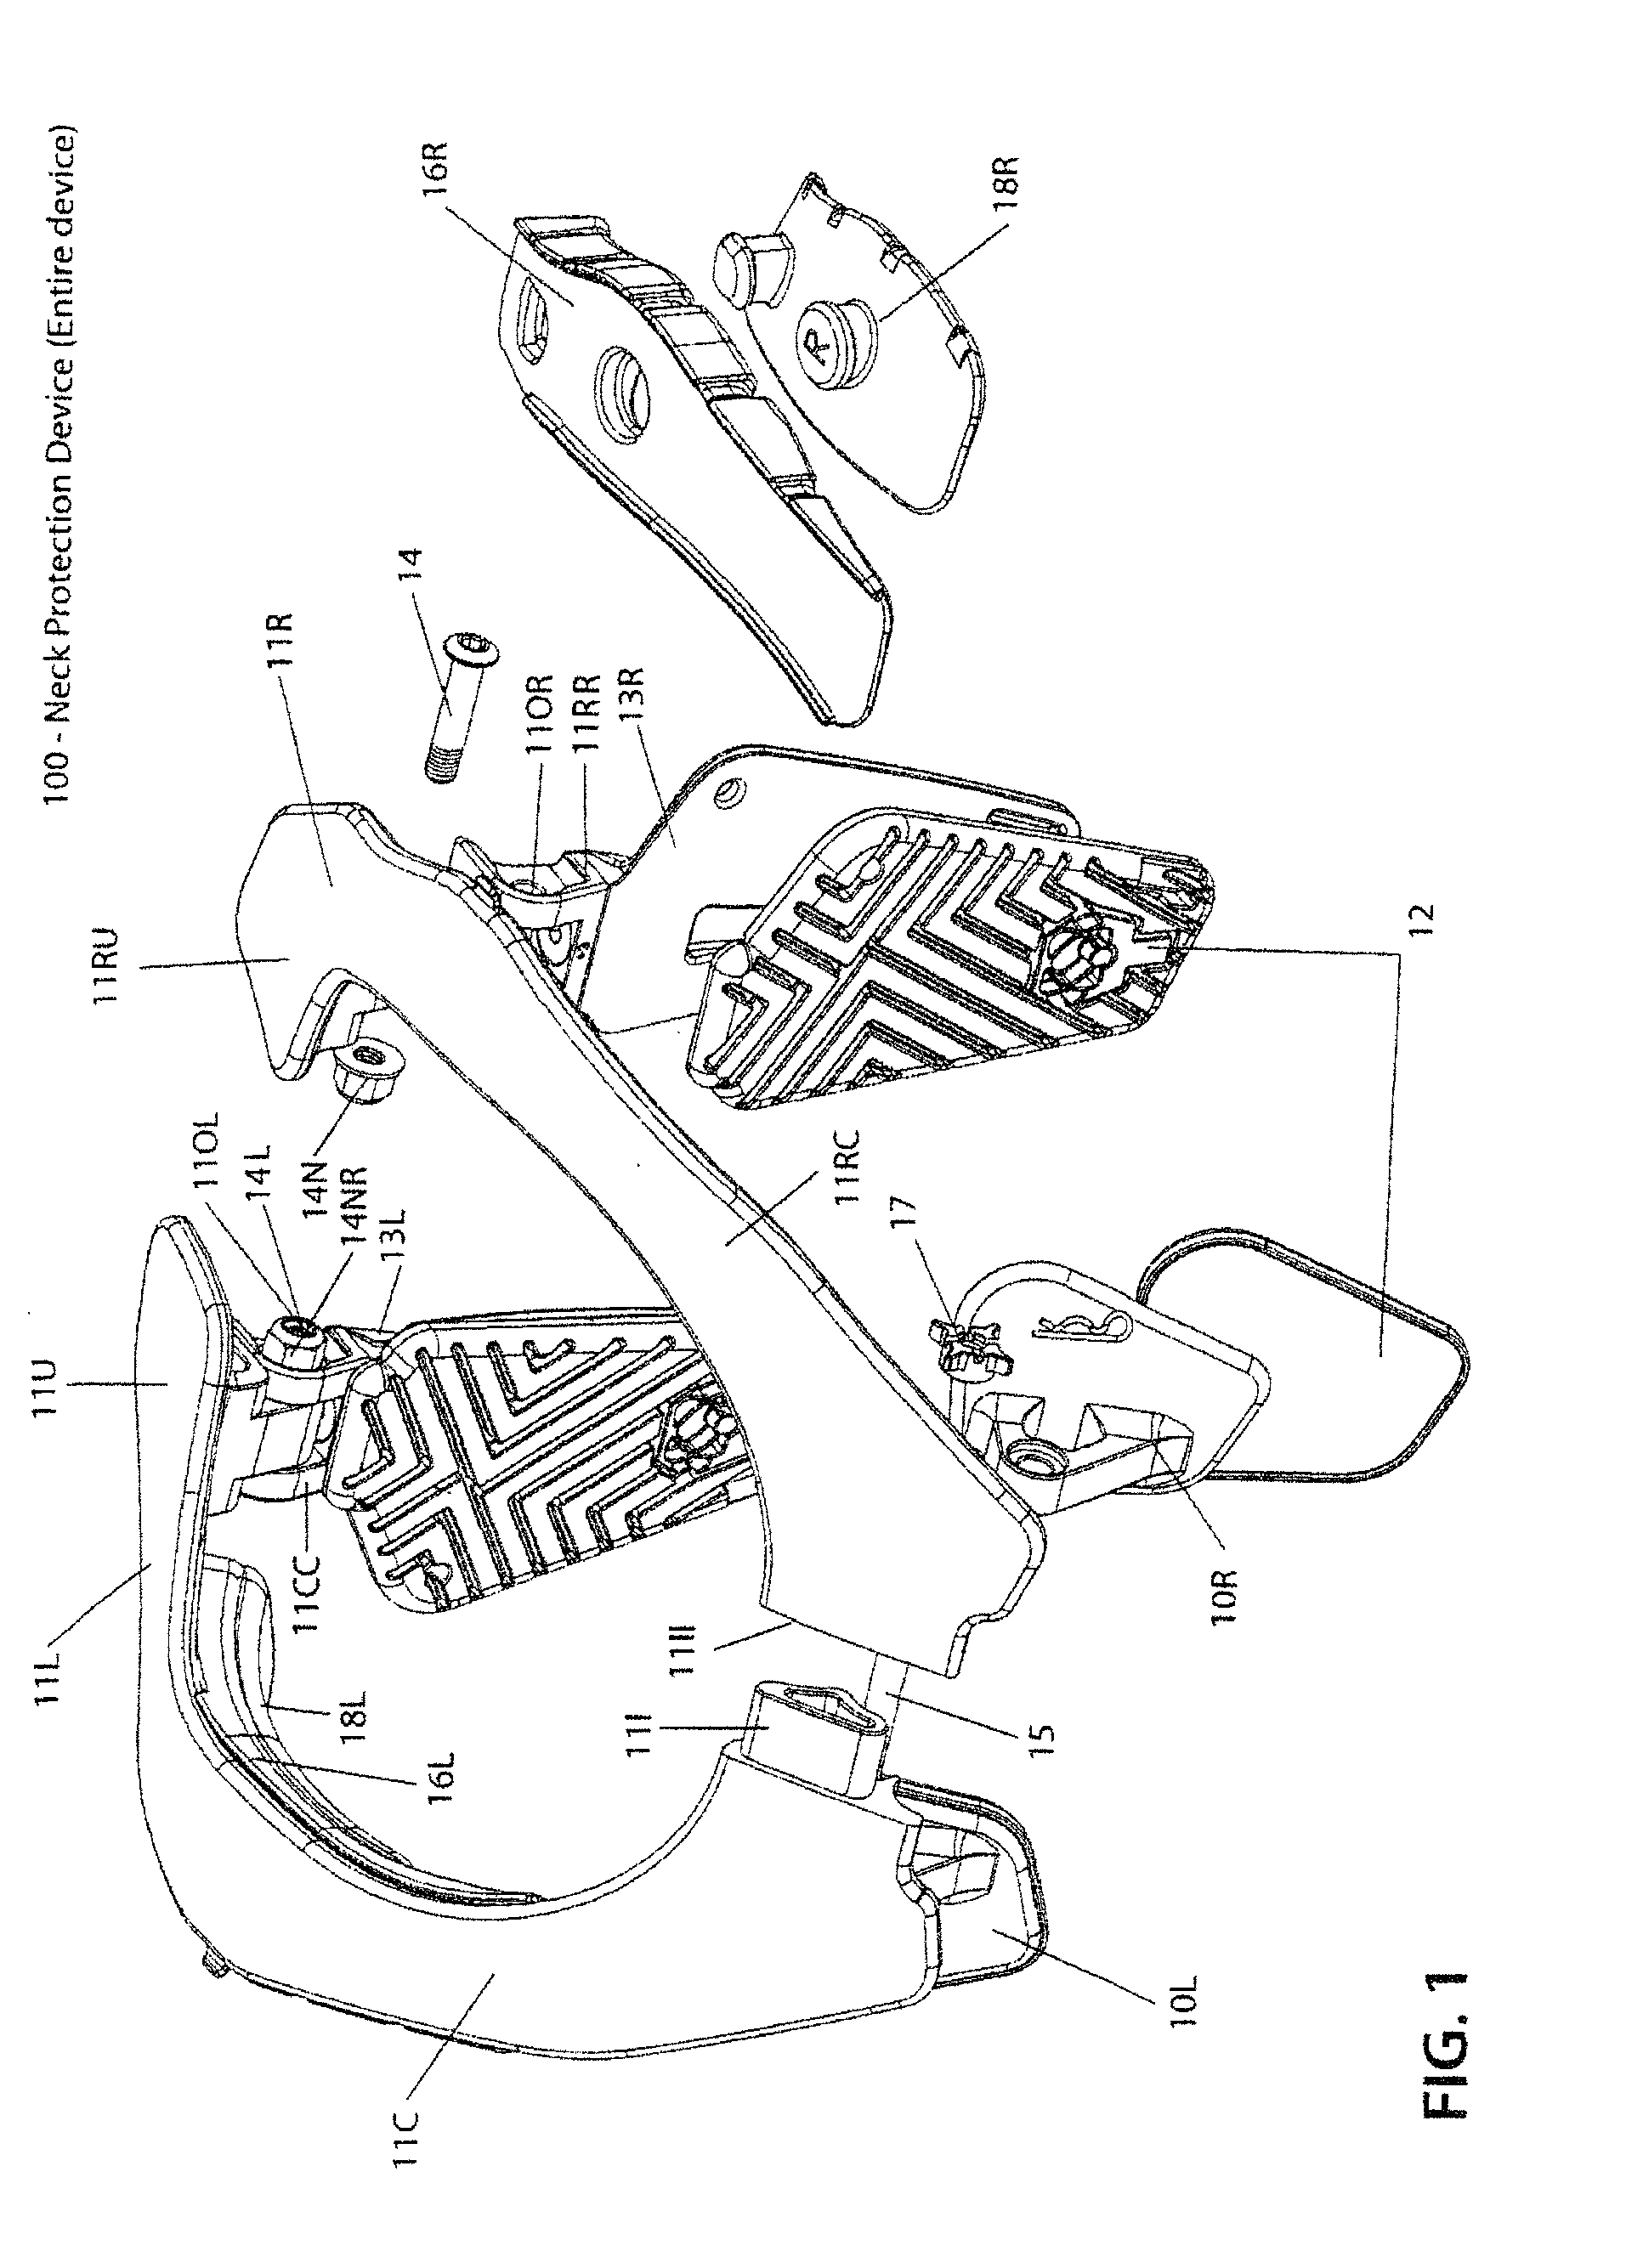 patent ep2556761a2 cervical spinal cord protection apparatus Spinal Cord Sections patent drawing